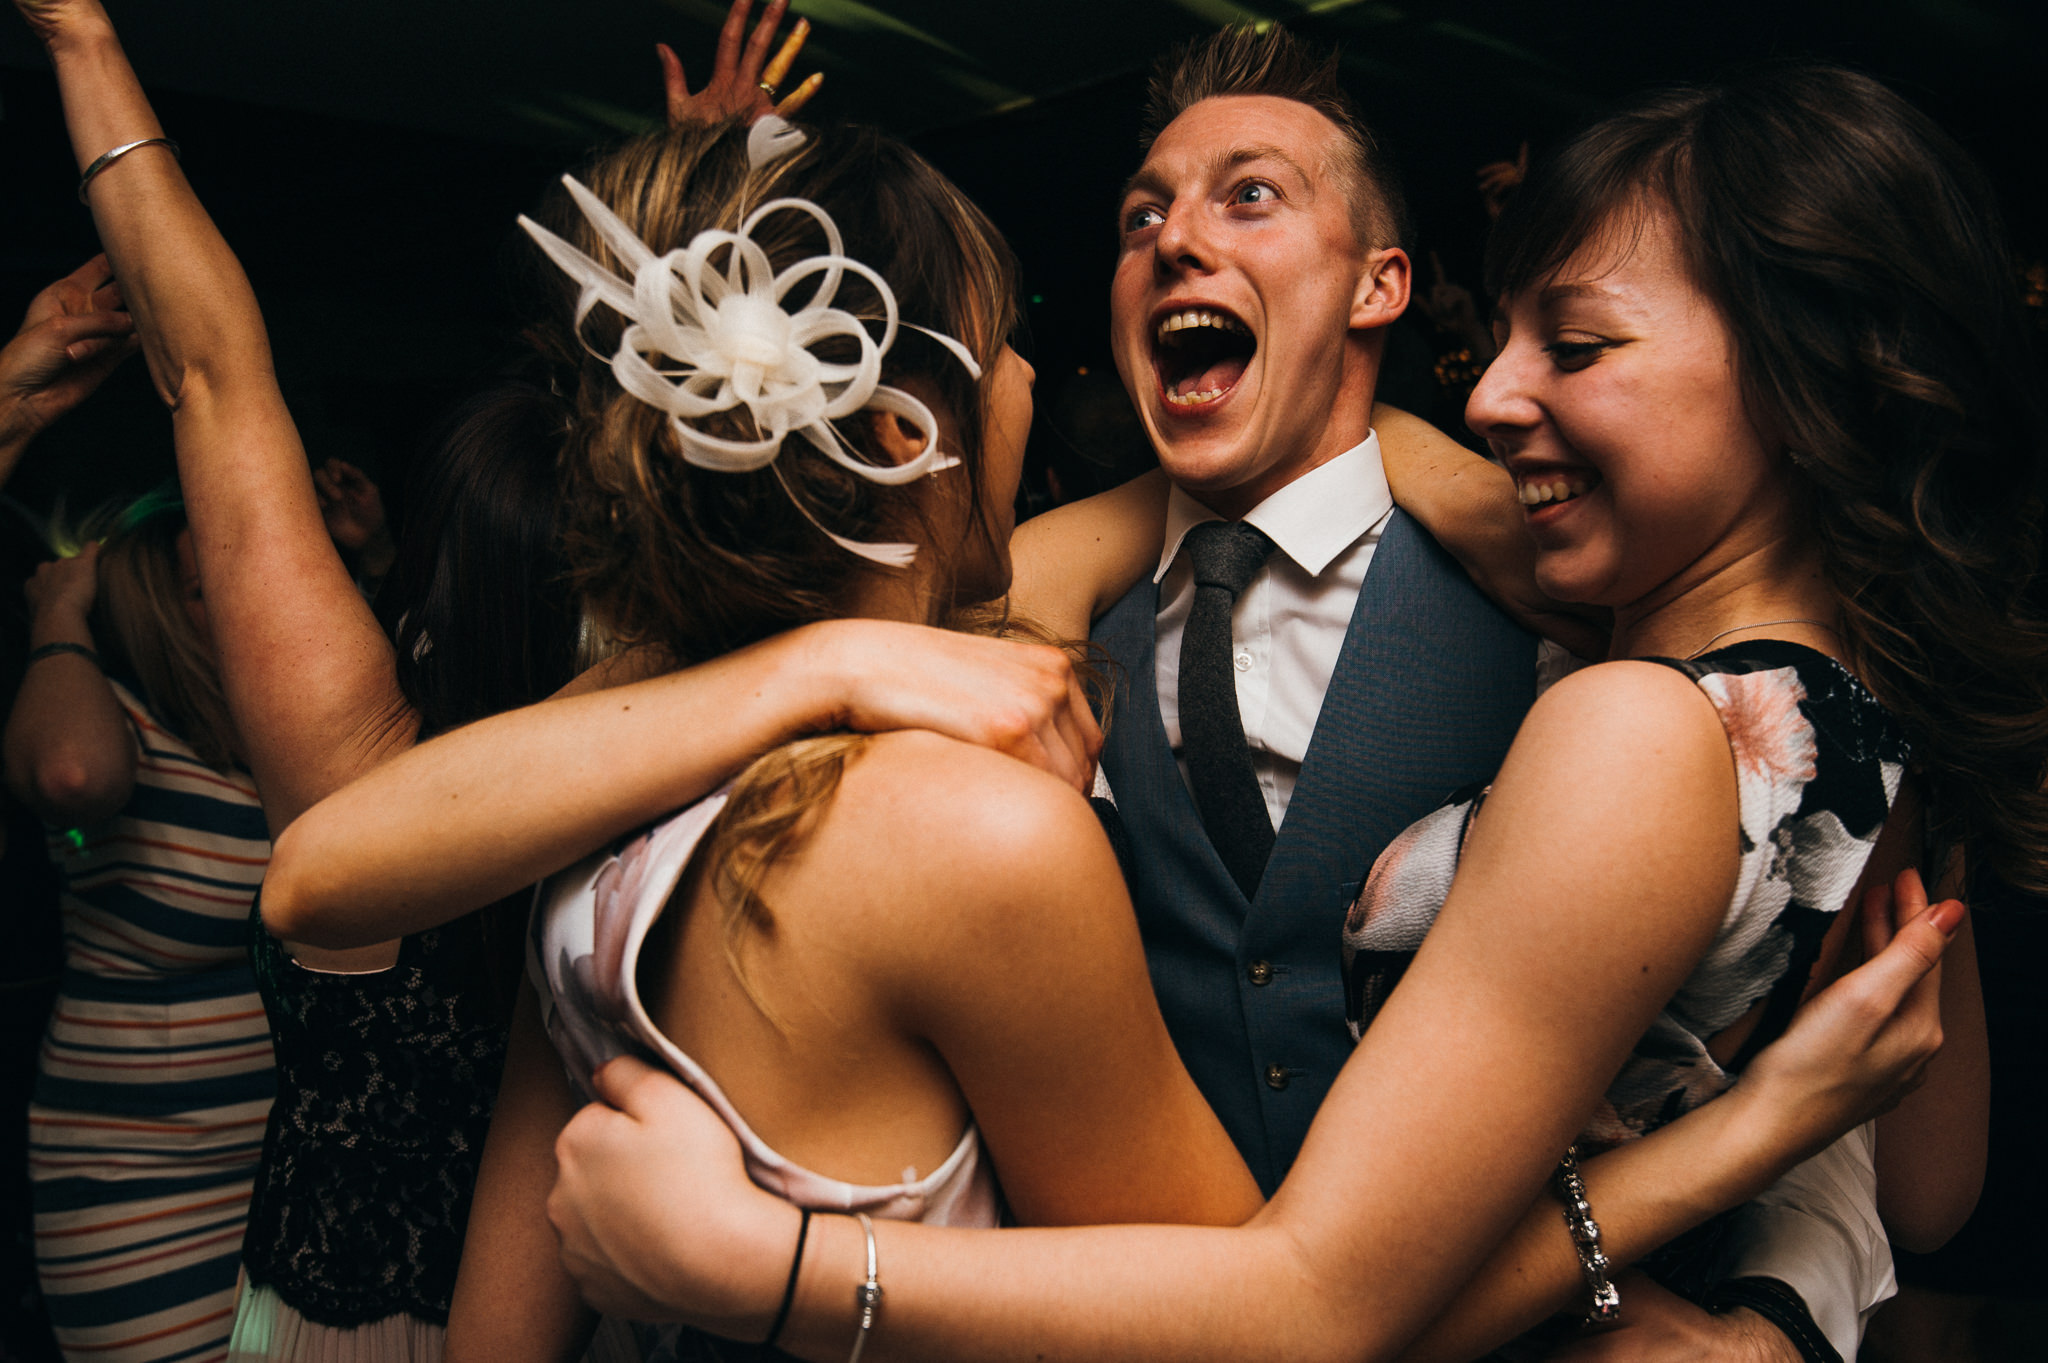 revelry on dance floor at Almonry barn wedding